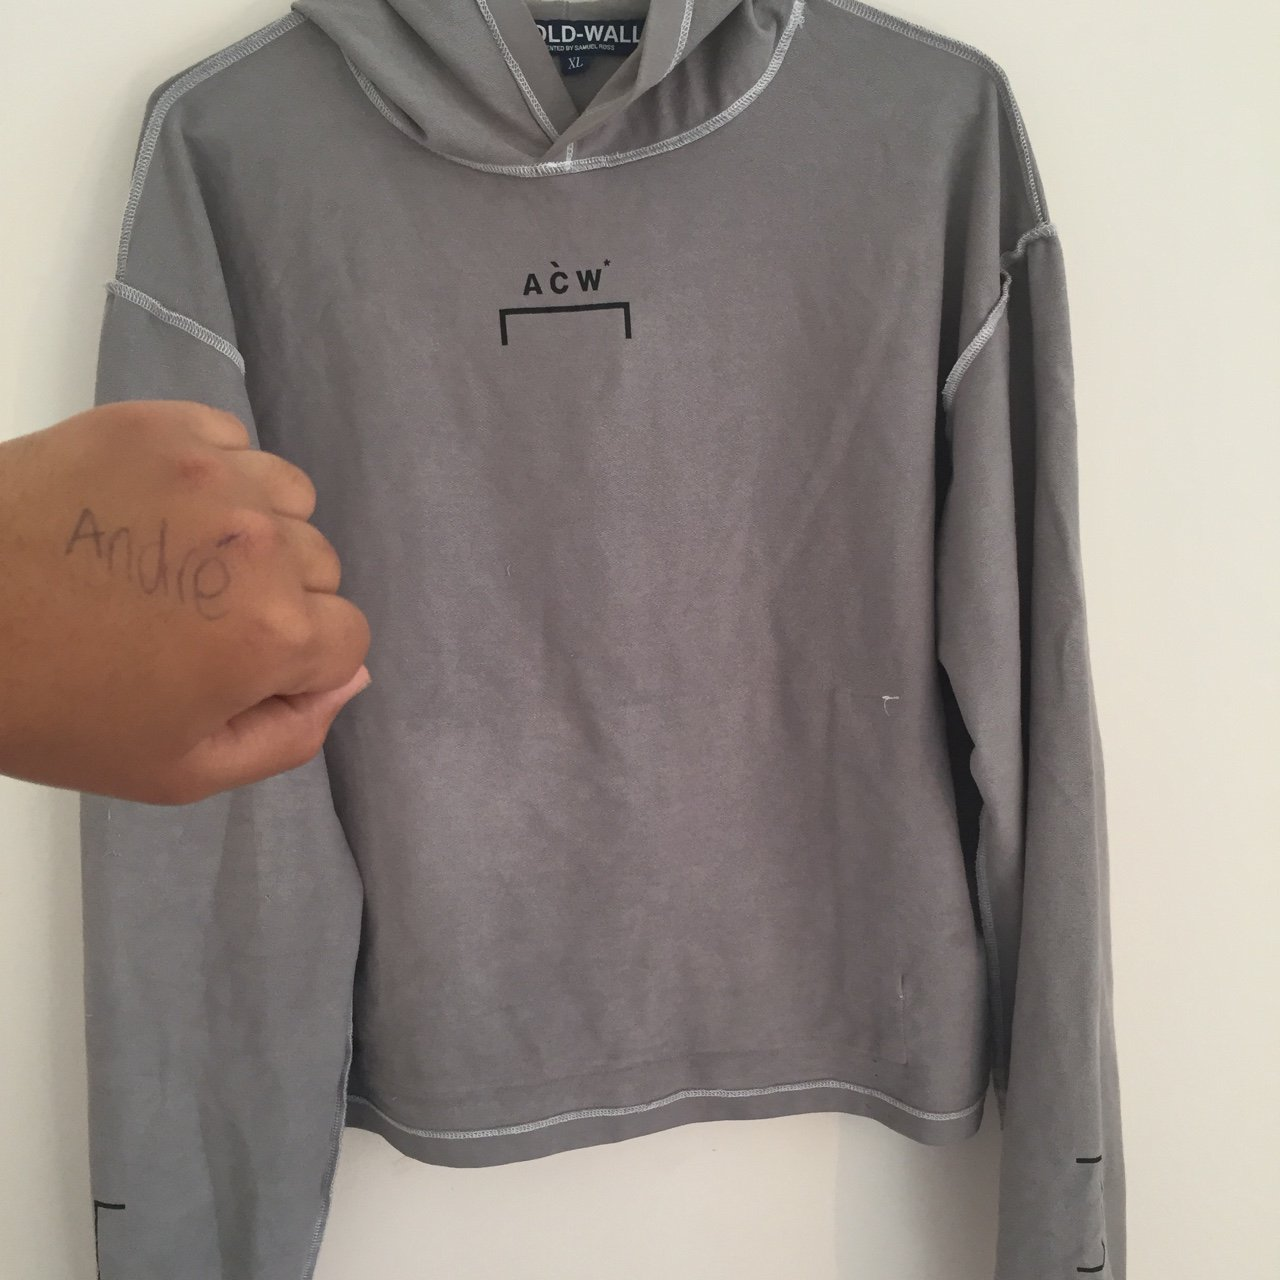 4941e484 AĆW HOODIE/ a cold wall hoodie. Size x large can fit a large - Depop